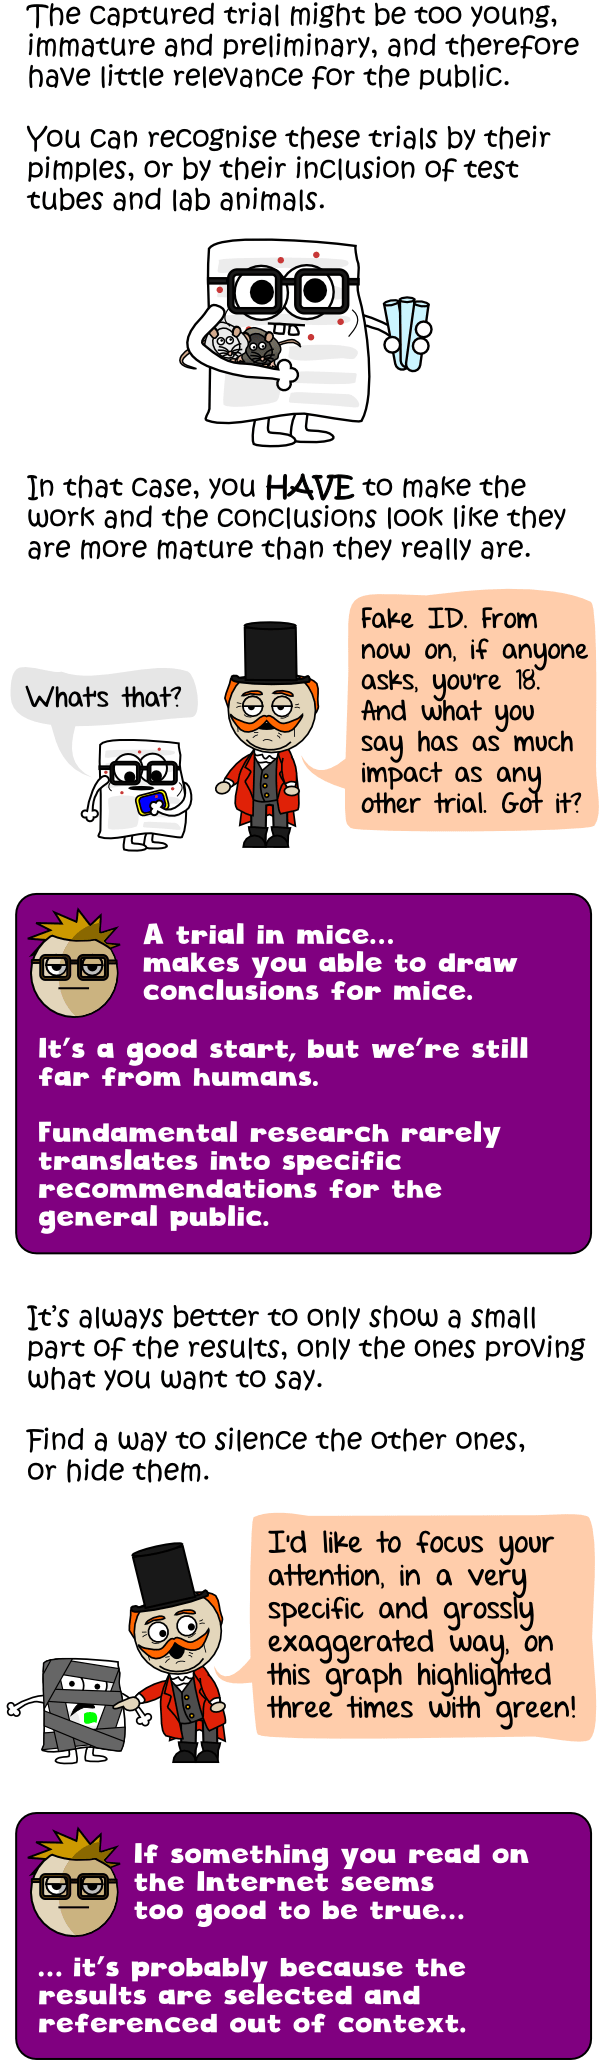 clinical_trials_03